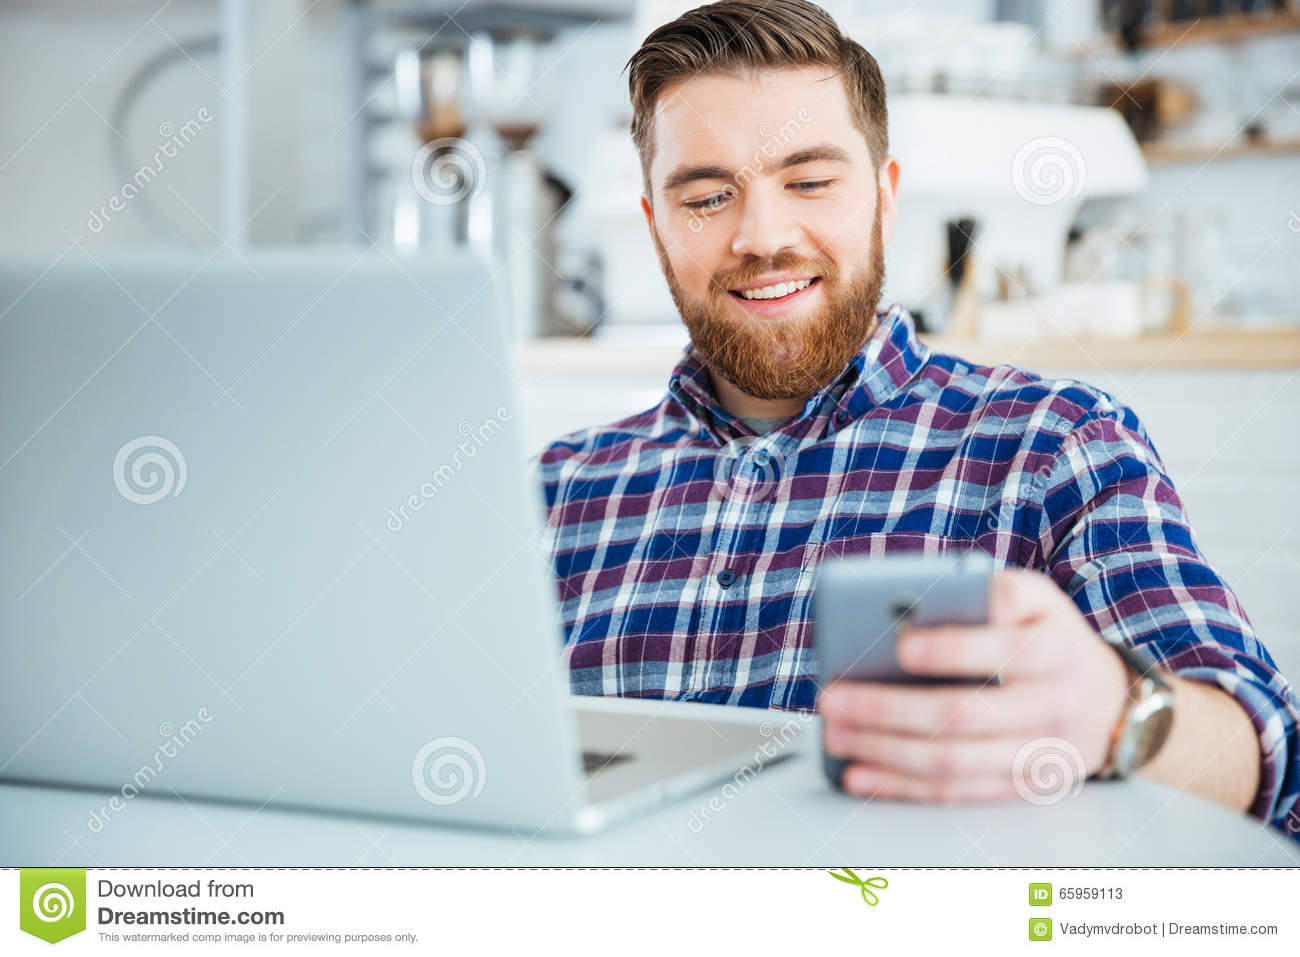 Man using smartphone and laptop compute in cafe